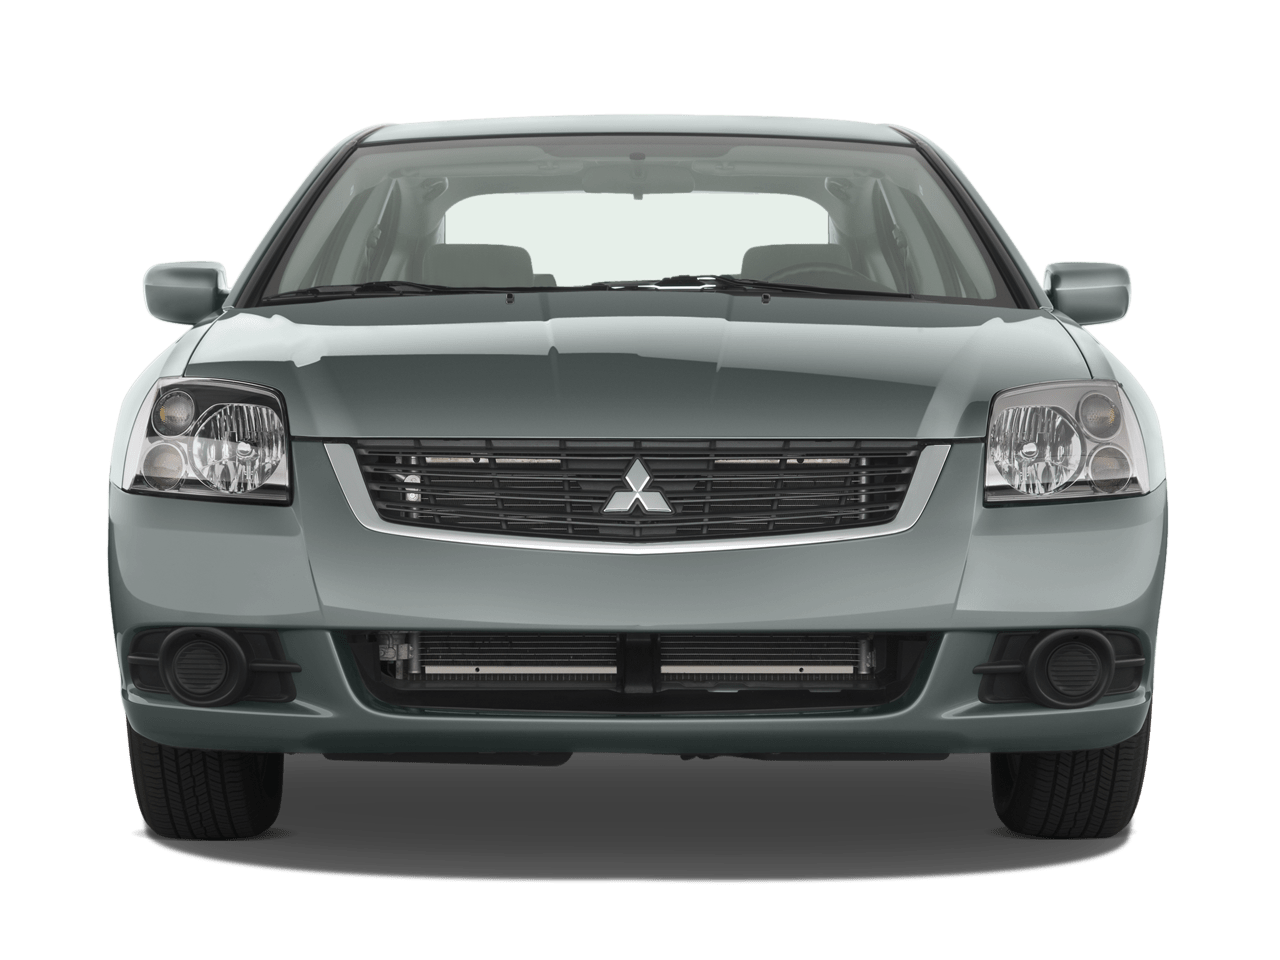 2009 Mitsubishi Galant Reviews Research Galant Prices